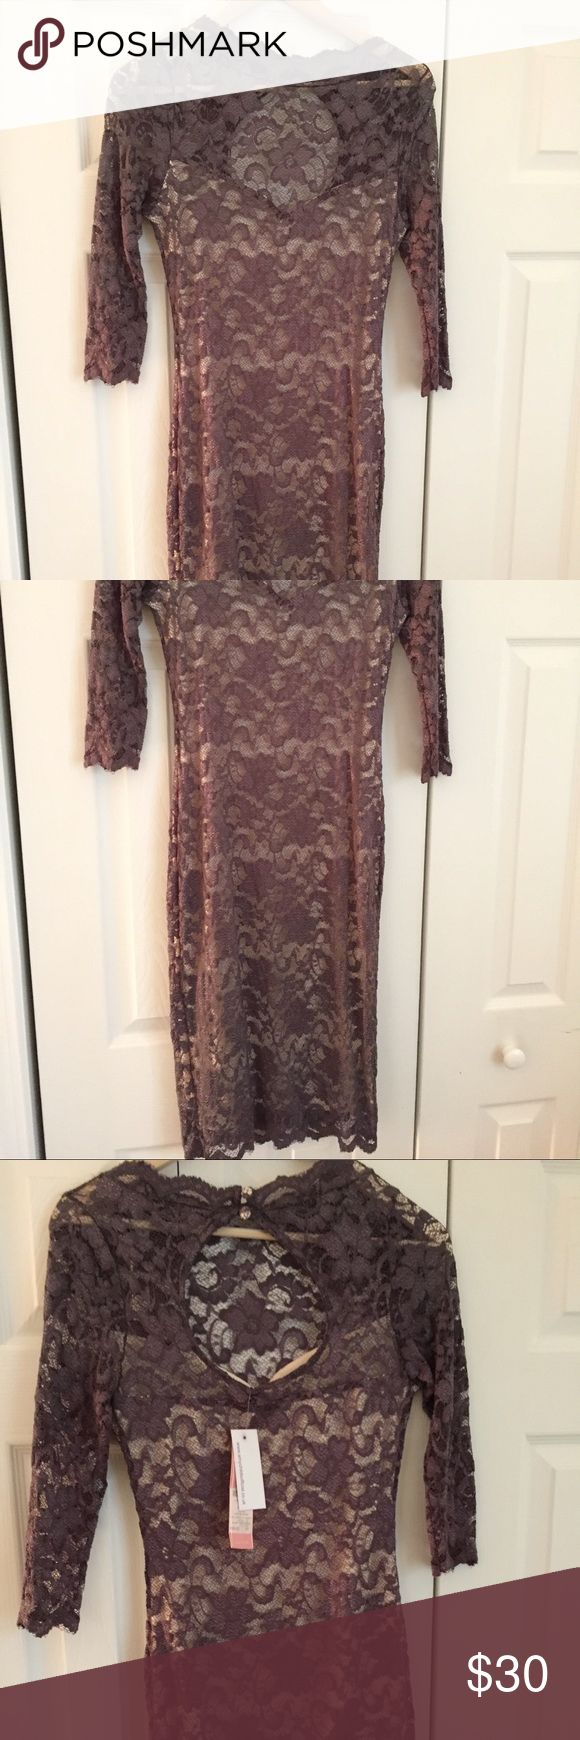 Amy Child's Lace gray dress Never worn Gray lace dress. It is lined and has opening in the back. New with tags. Fits as a 10. Measures 38 inches from top to bottom. Dresses Midi